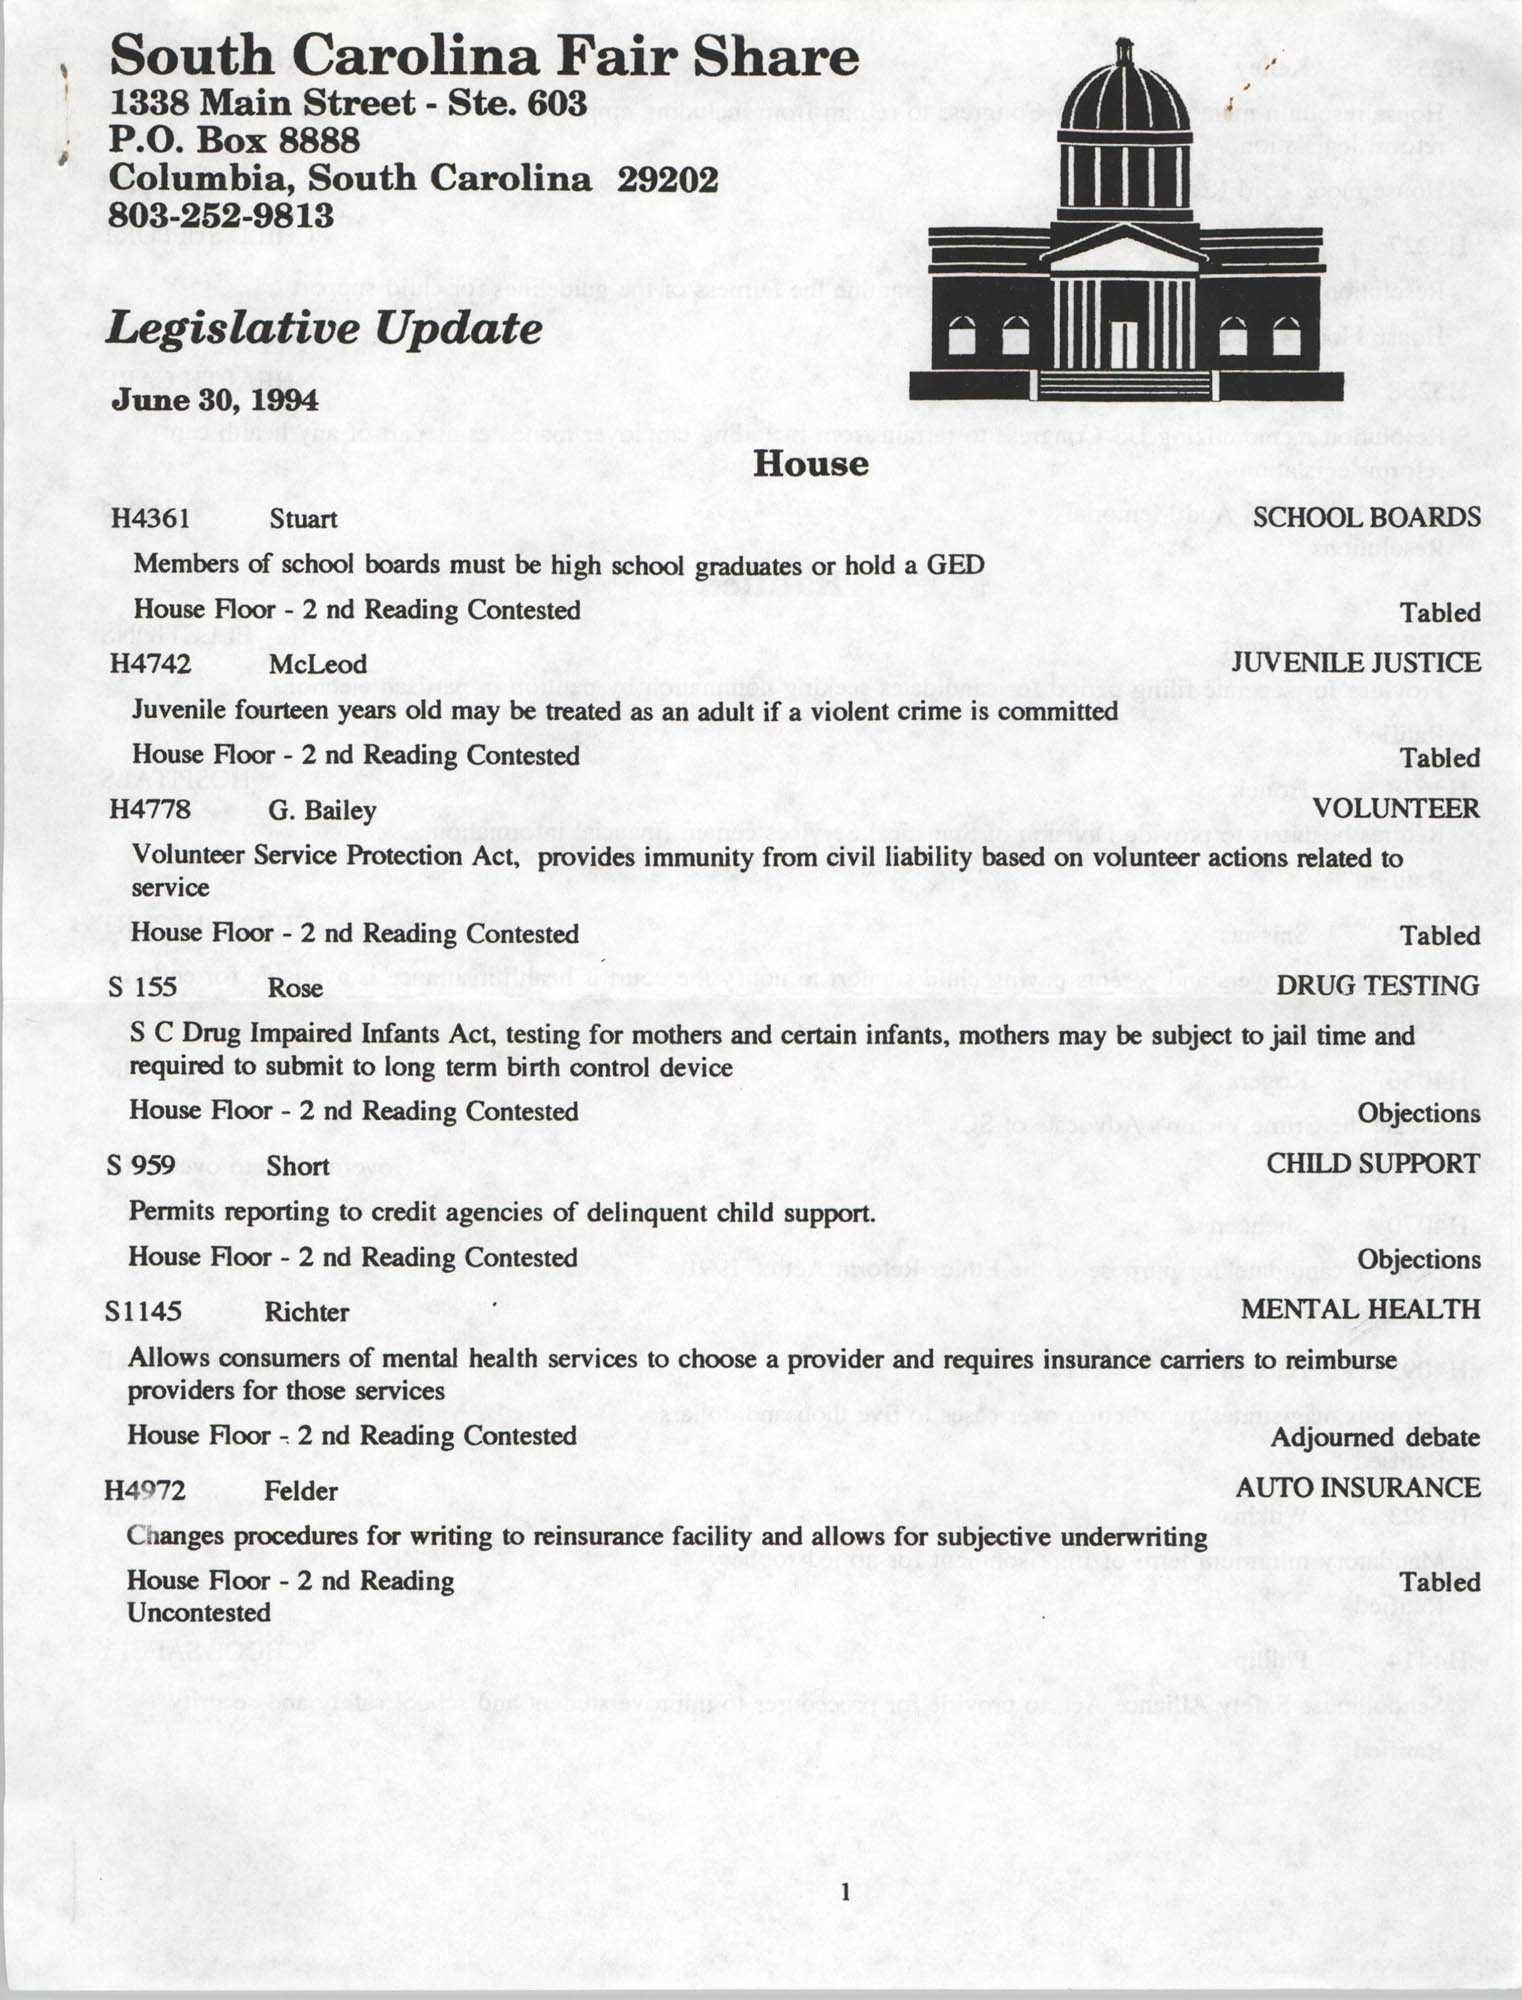 South Carolina Fair Share Legislative Update, June 30, 1994